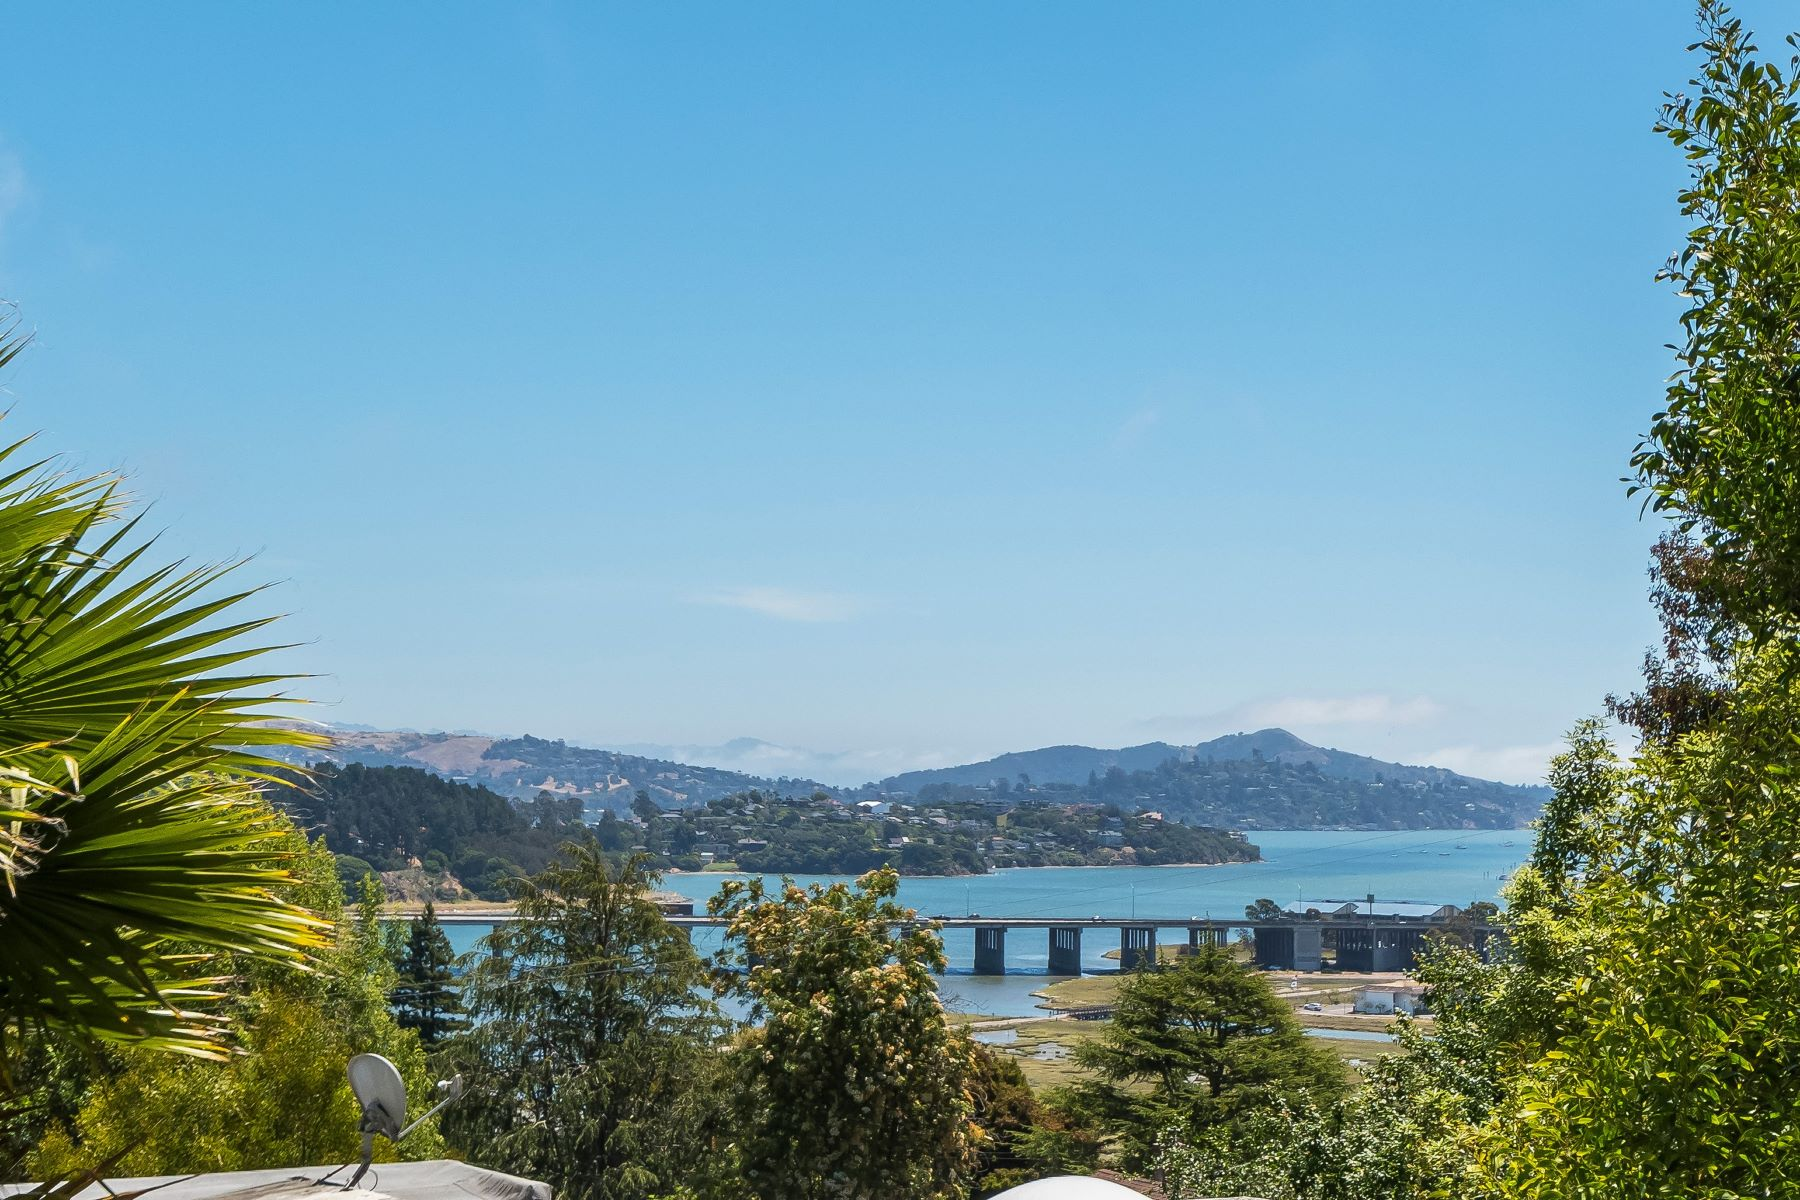 Single Family Homes for Sale at Exercise with a View! 233 Cleveland Avenue, Mill Valley, California 94941 United States